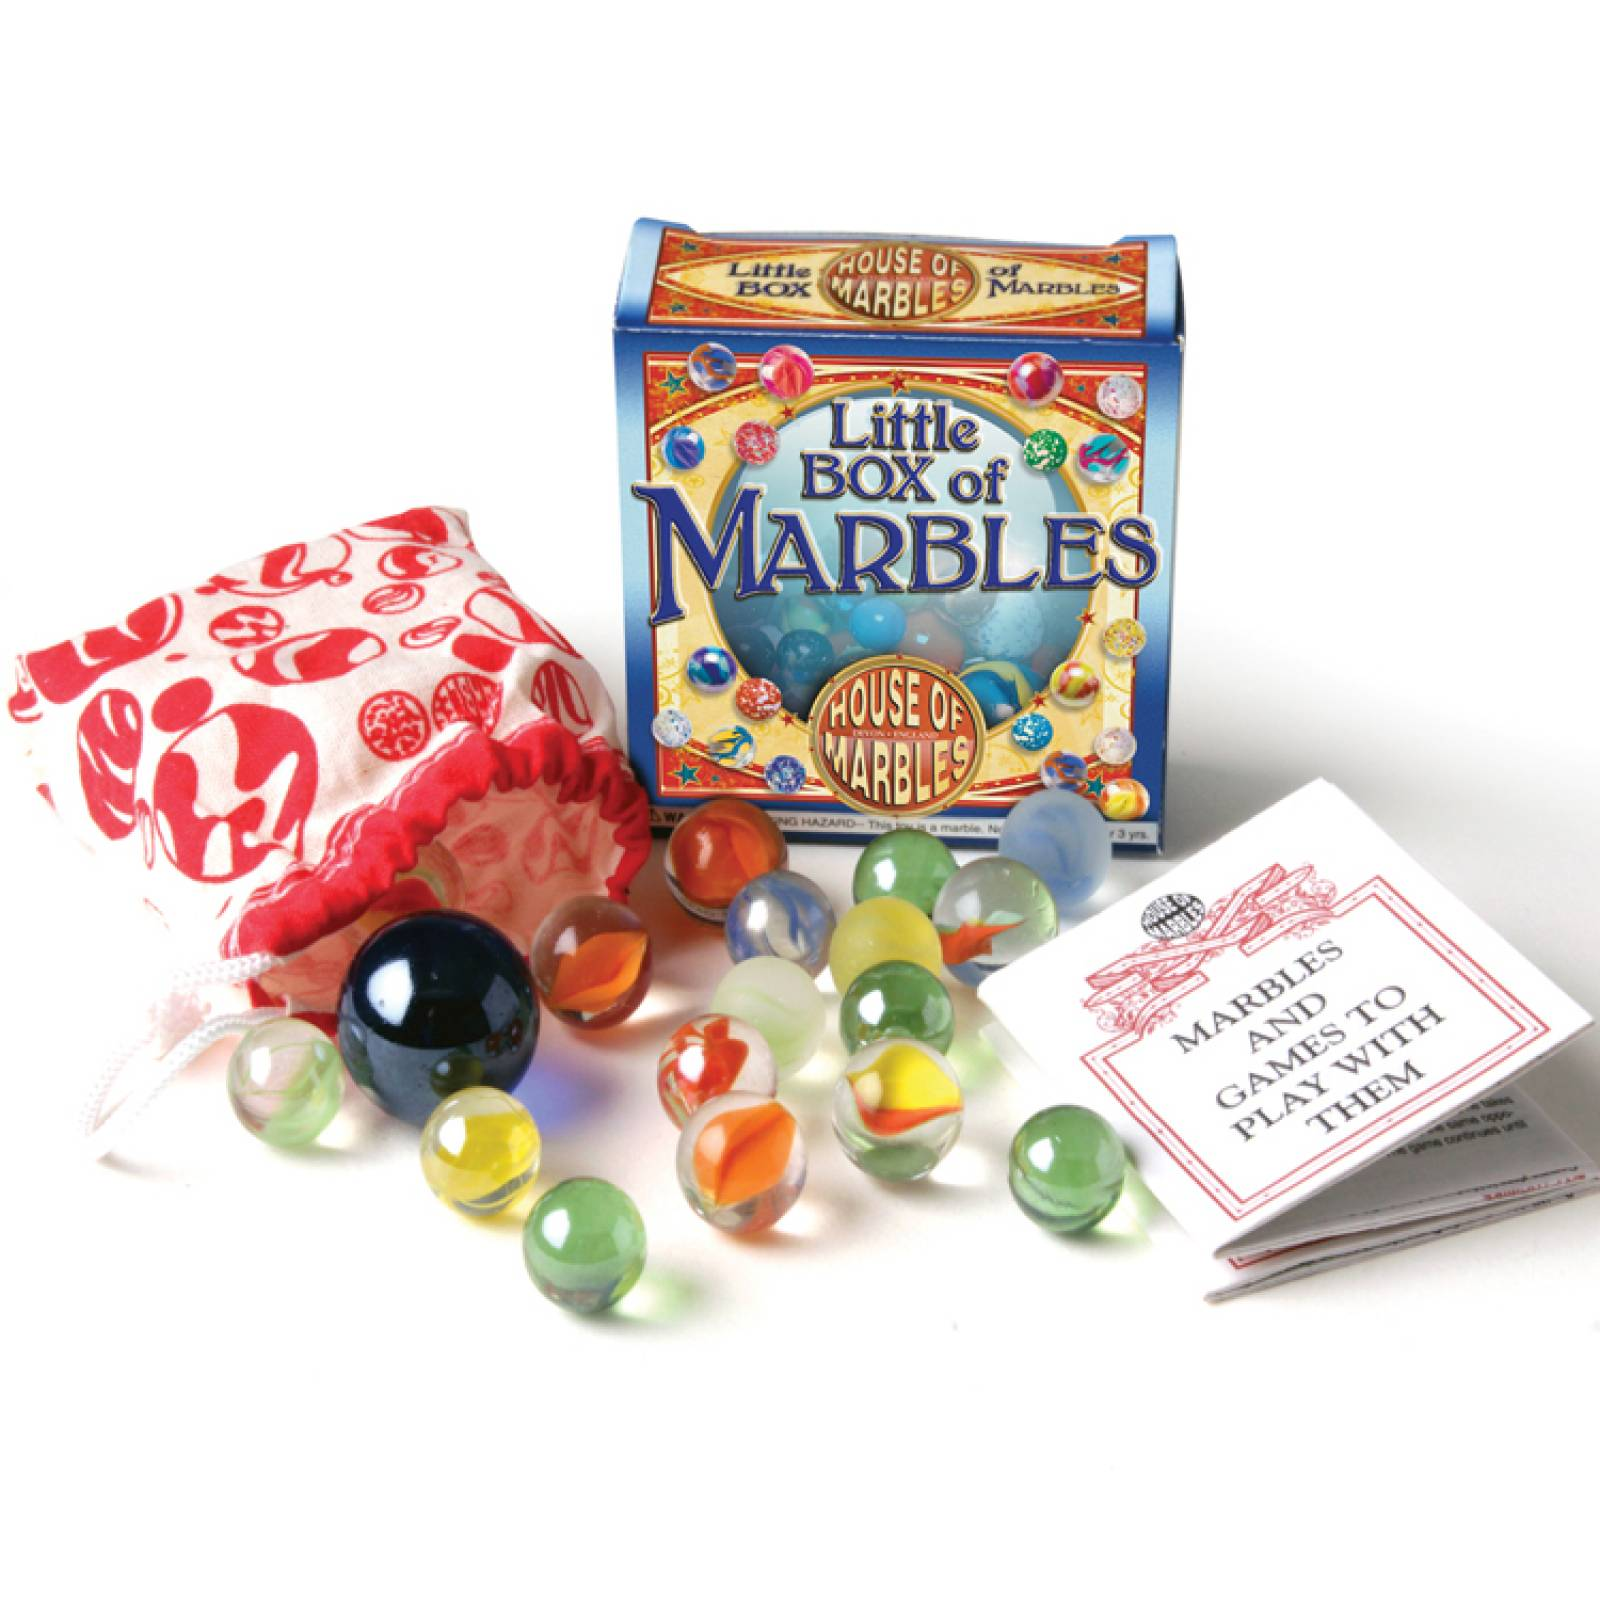 Little Box of Marbles